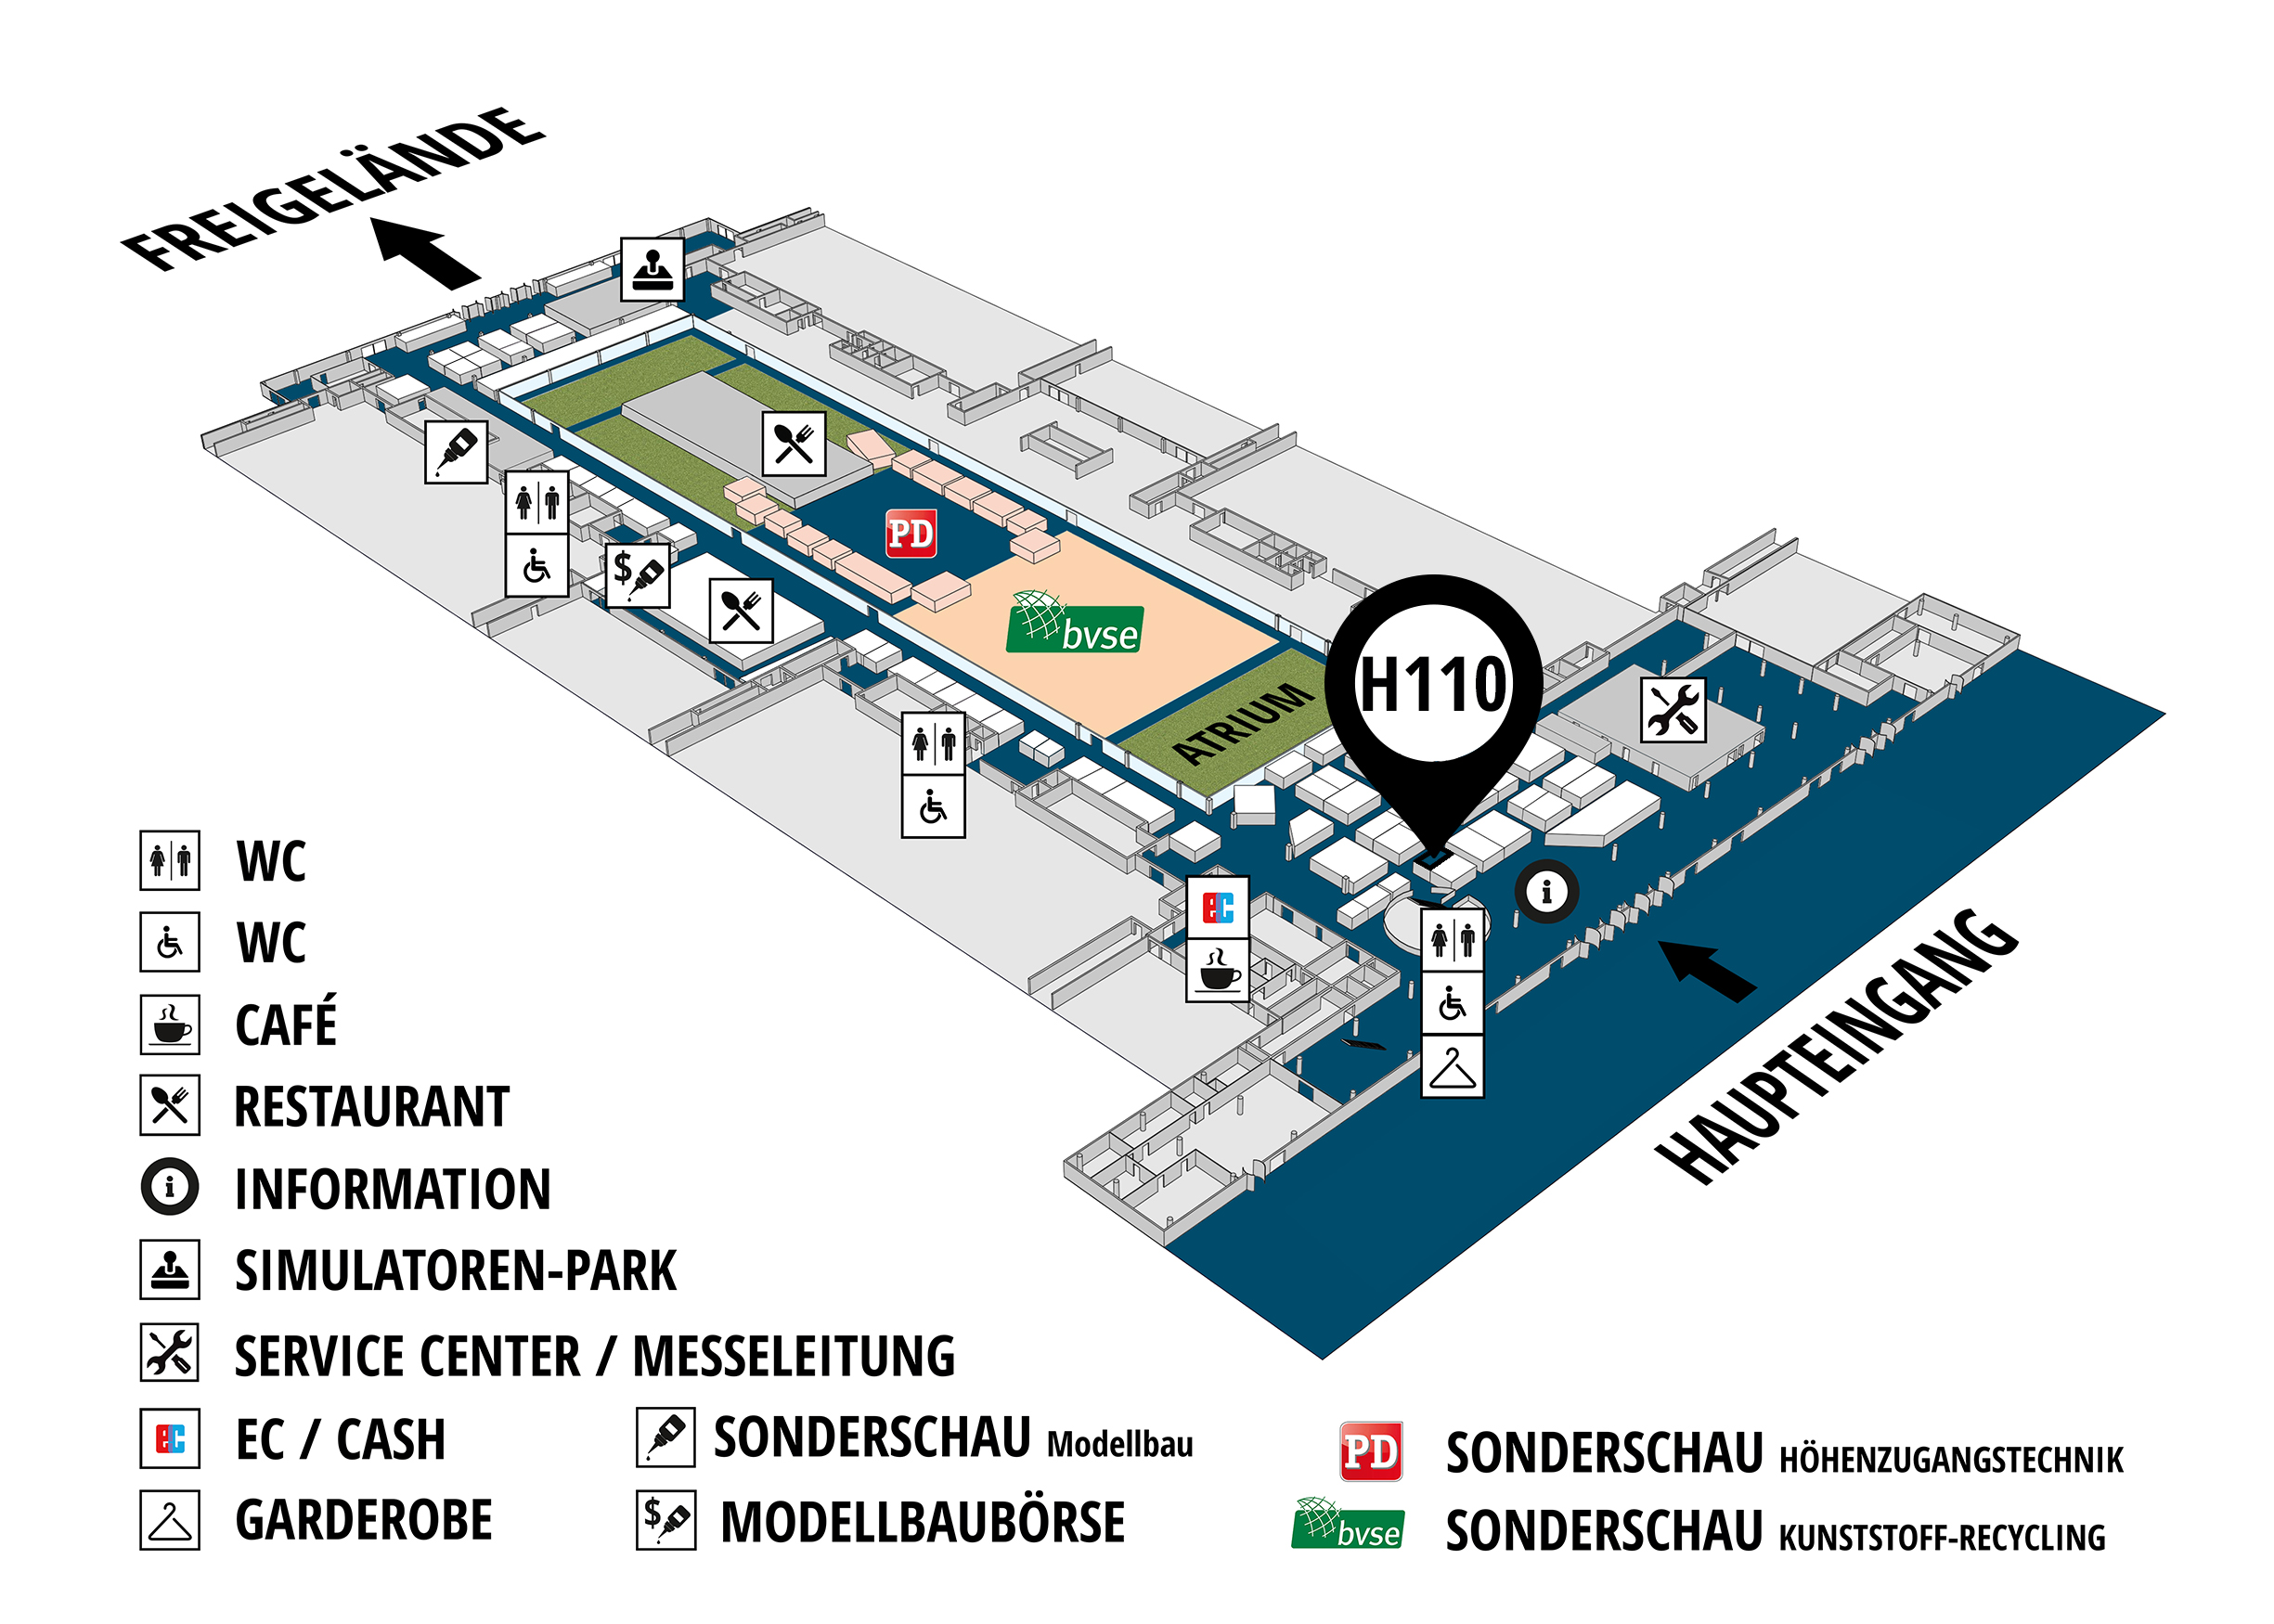 RecyclingAKTIV & TiefbauLIVE 2019. The Demonstration Trade Fairs ||Demonstration trade fair for waste removal and recycling. Demonstration trade fair for road construction and civil engineering. hall map (Visitors circuit): stand H110